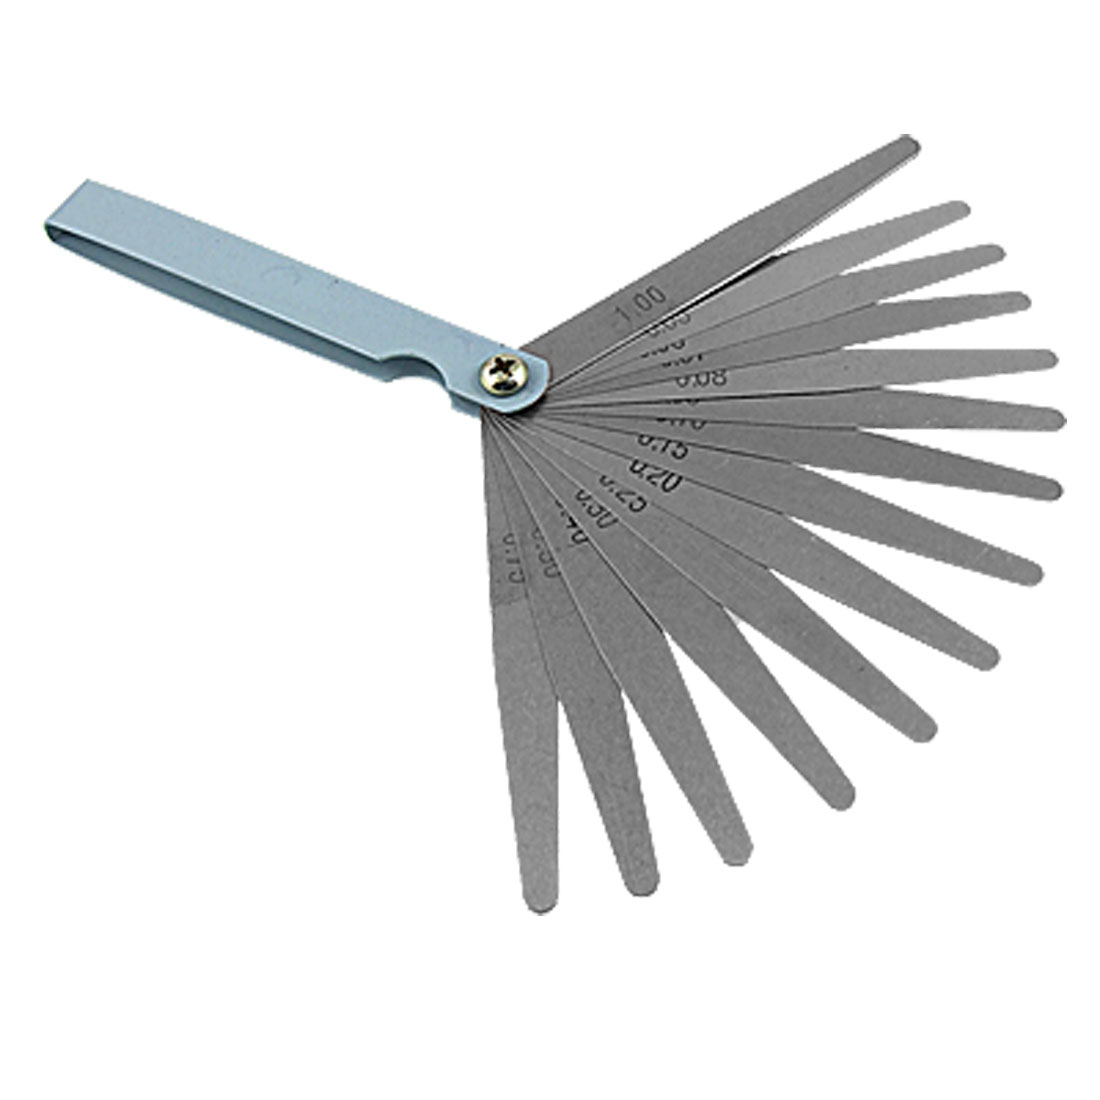 14 Leaf Offset Feeler Gauge Model Measure 0.05-1mm